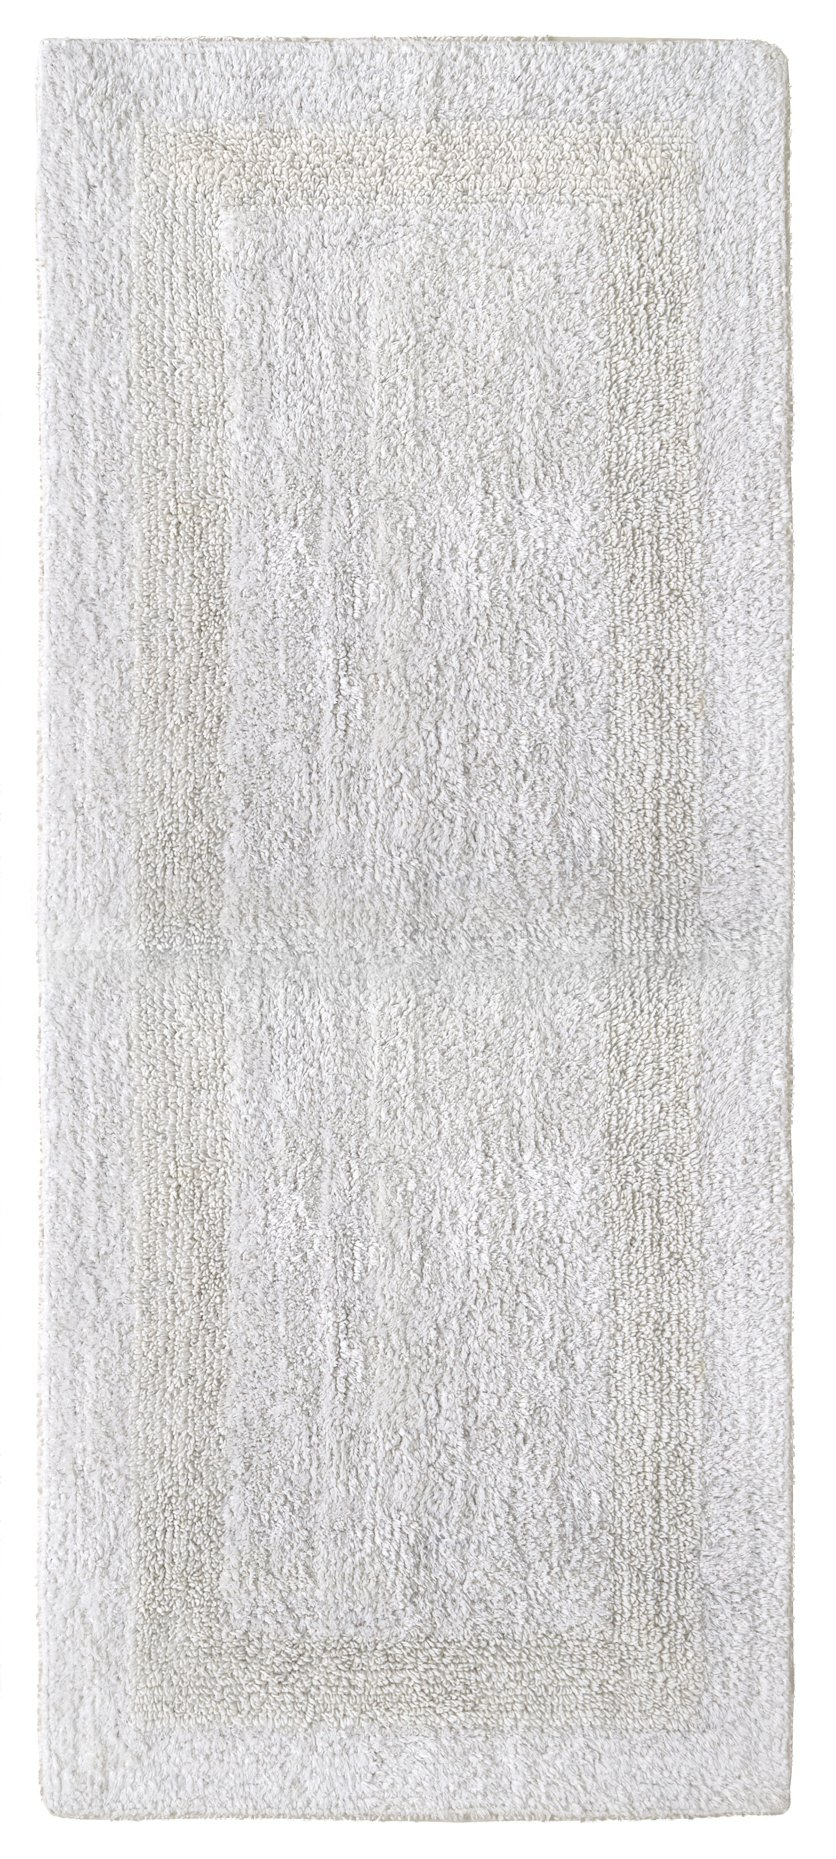 Cotton Craft Reversible Step Out Bath Mat Rug Set 24x60 White, 100% Pure Cotton, Super Soft, Plush & Absorbent, Hand Tufted Heavy Weight Construction, Full Reversible, Rug Pad Recommended